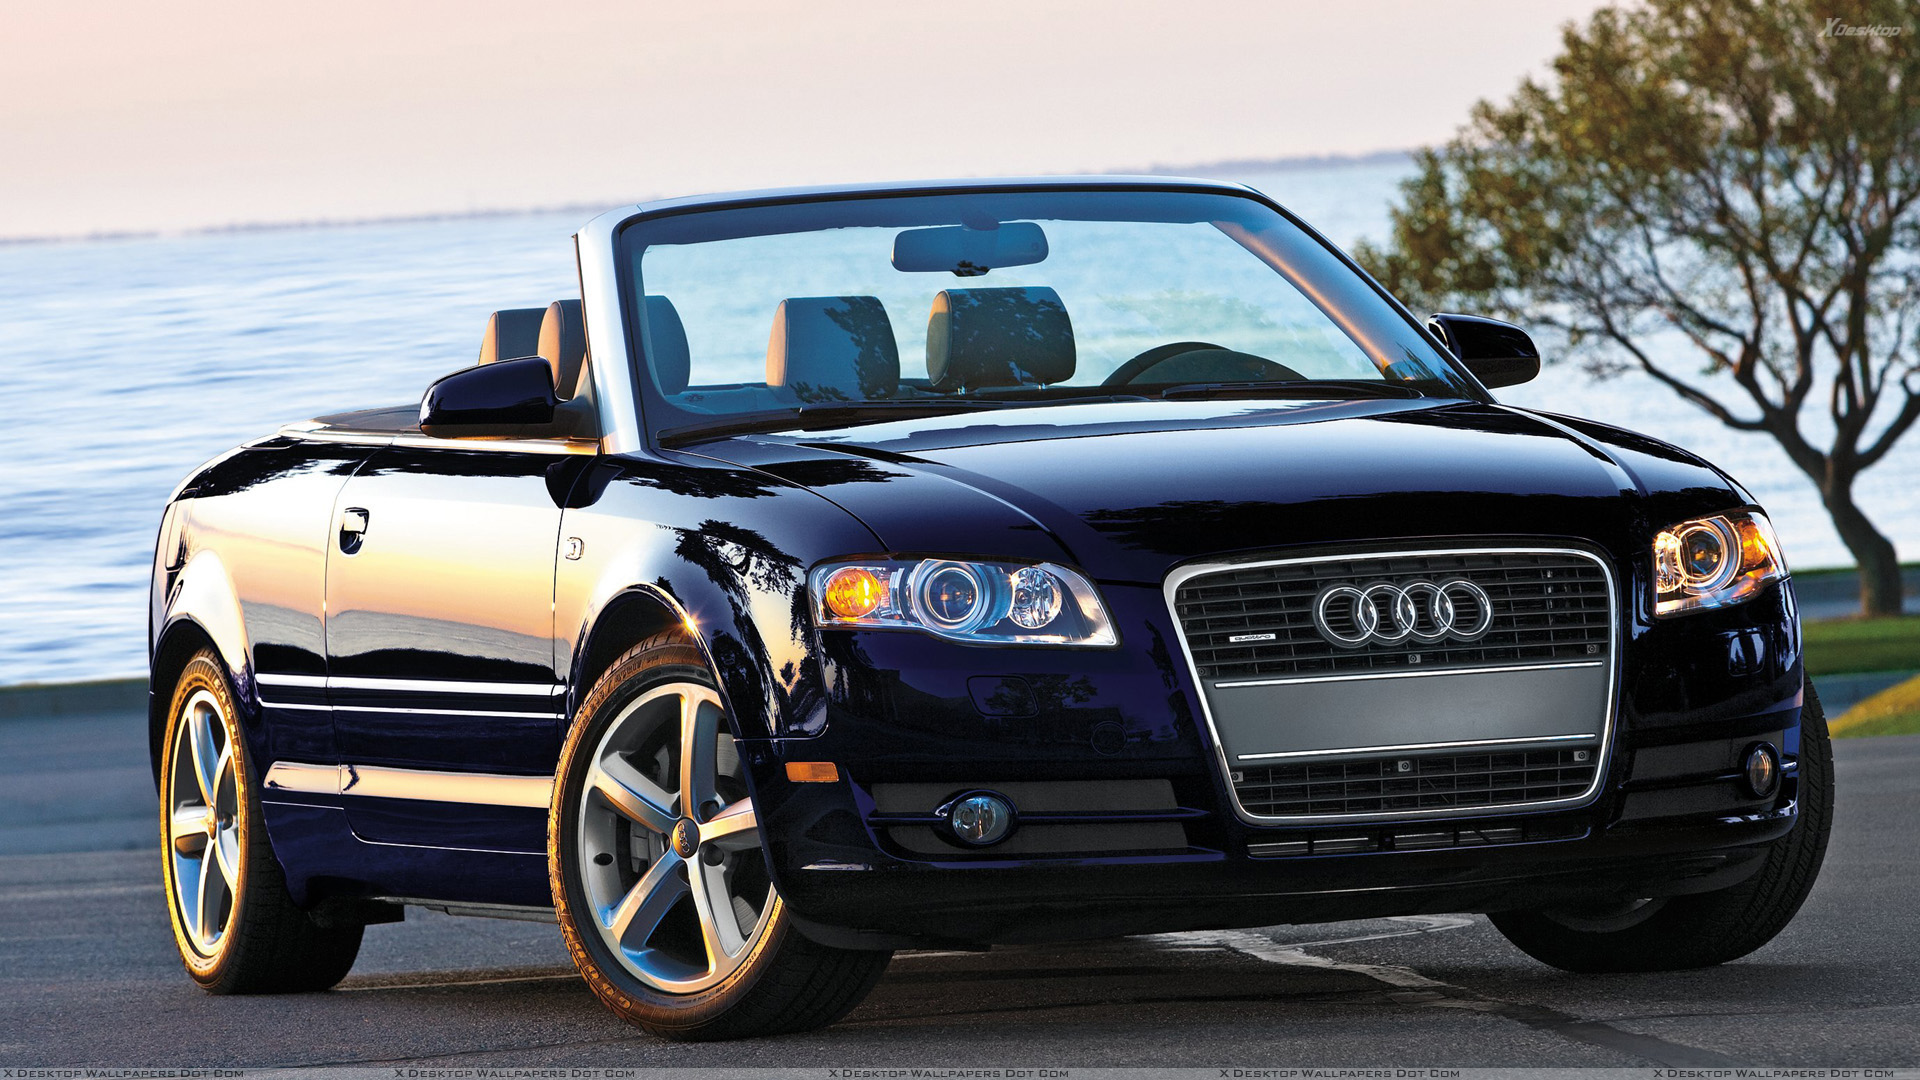 audi a4 cabriolet in shine black front pose near sea side. Black Bedroom Furniture Sets. Home Design Ideas